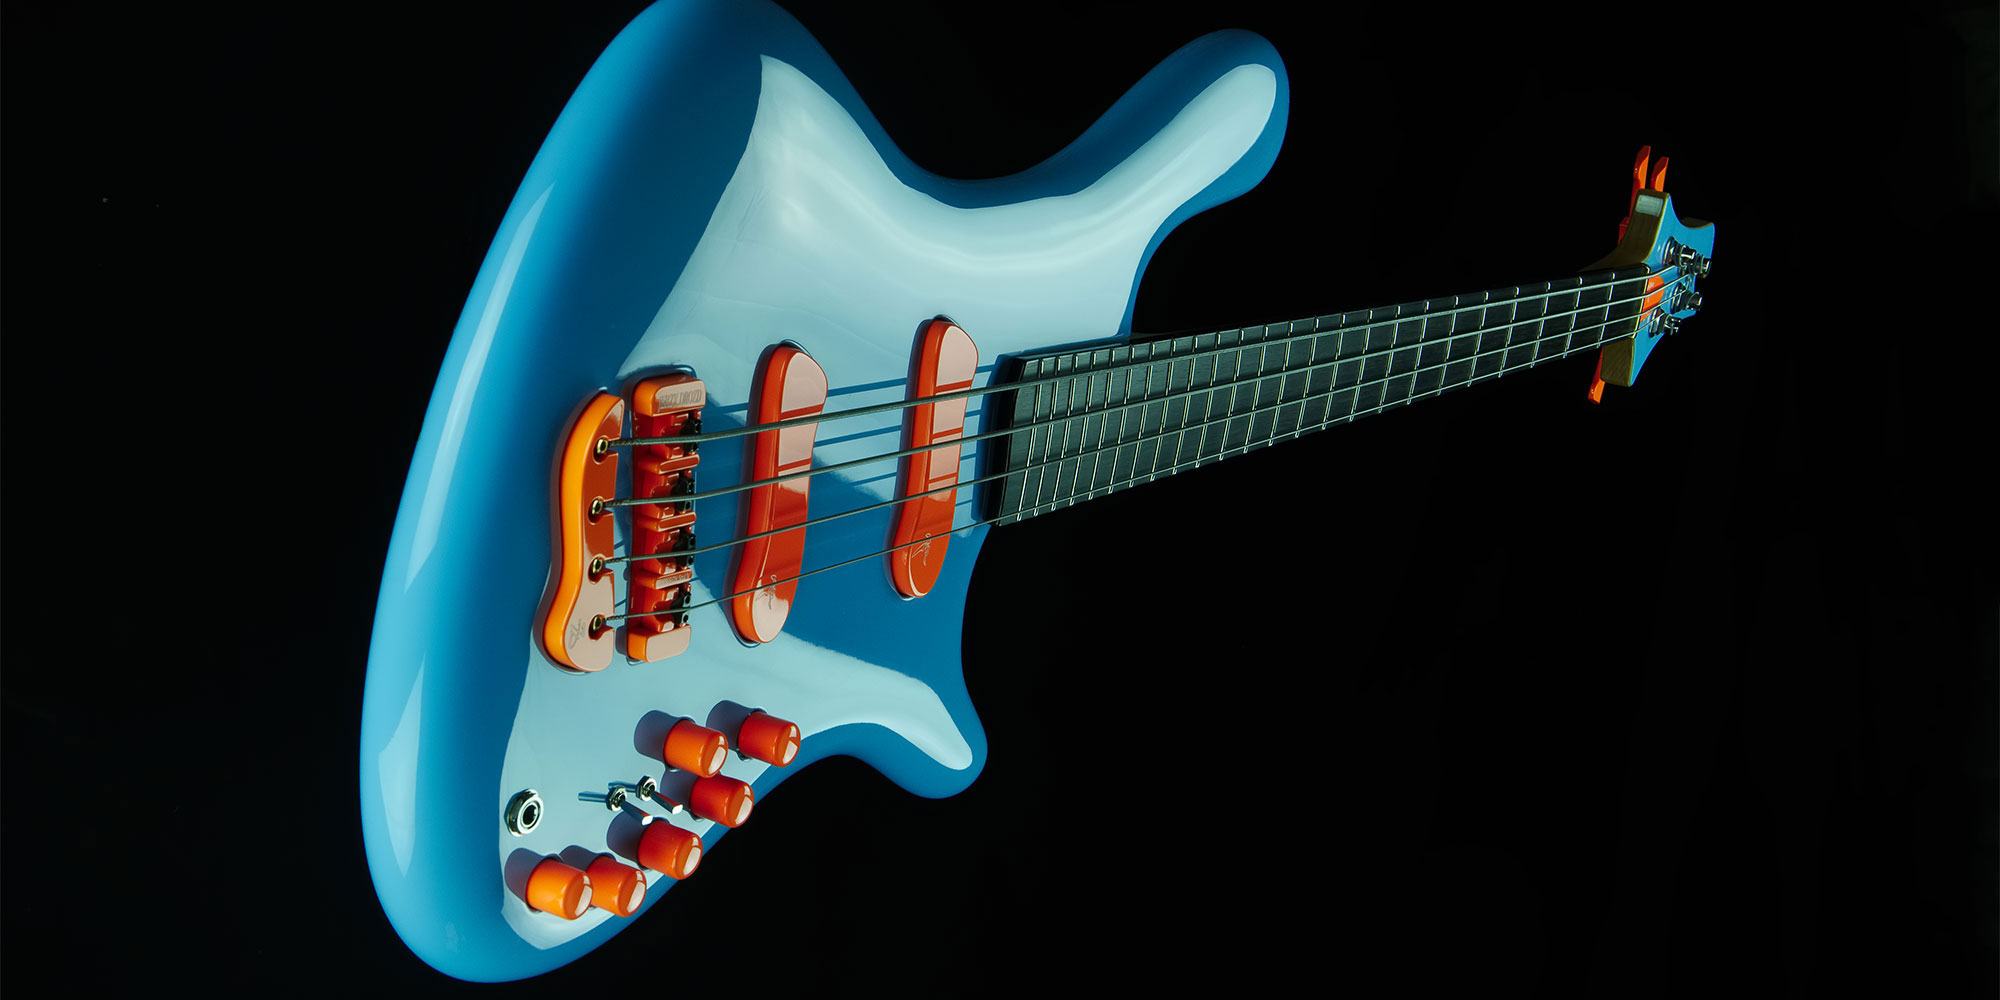 jerzy drozd soul blue orange 4 strings bass guitar banner 2